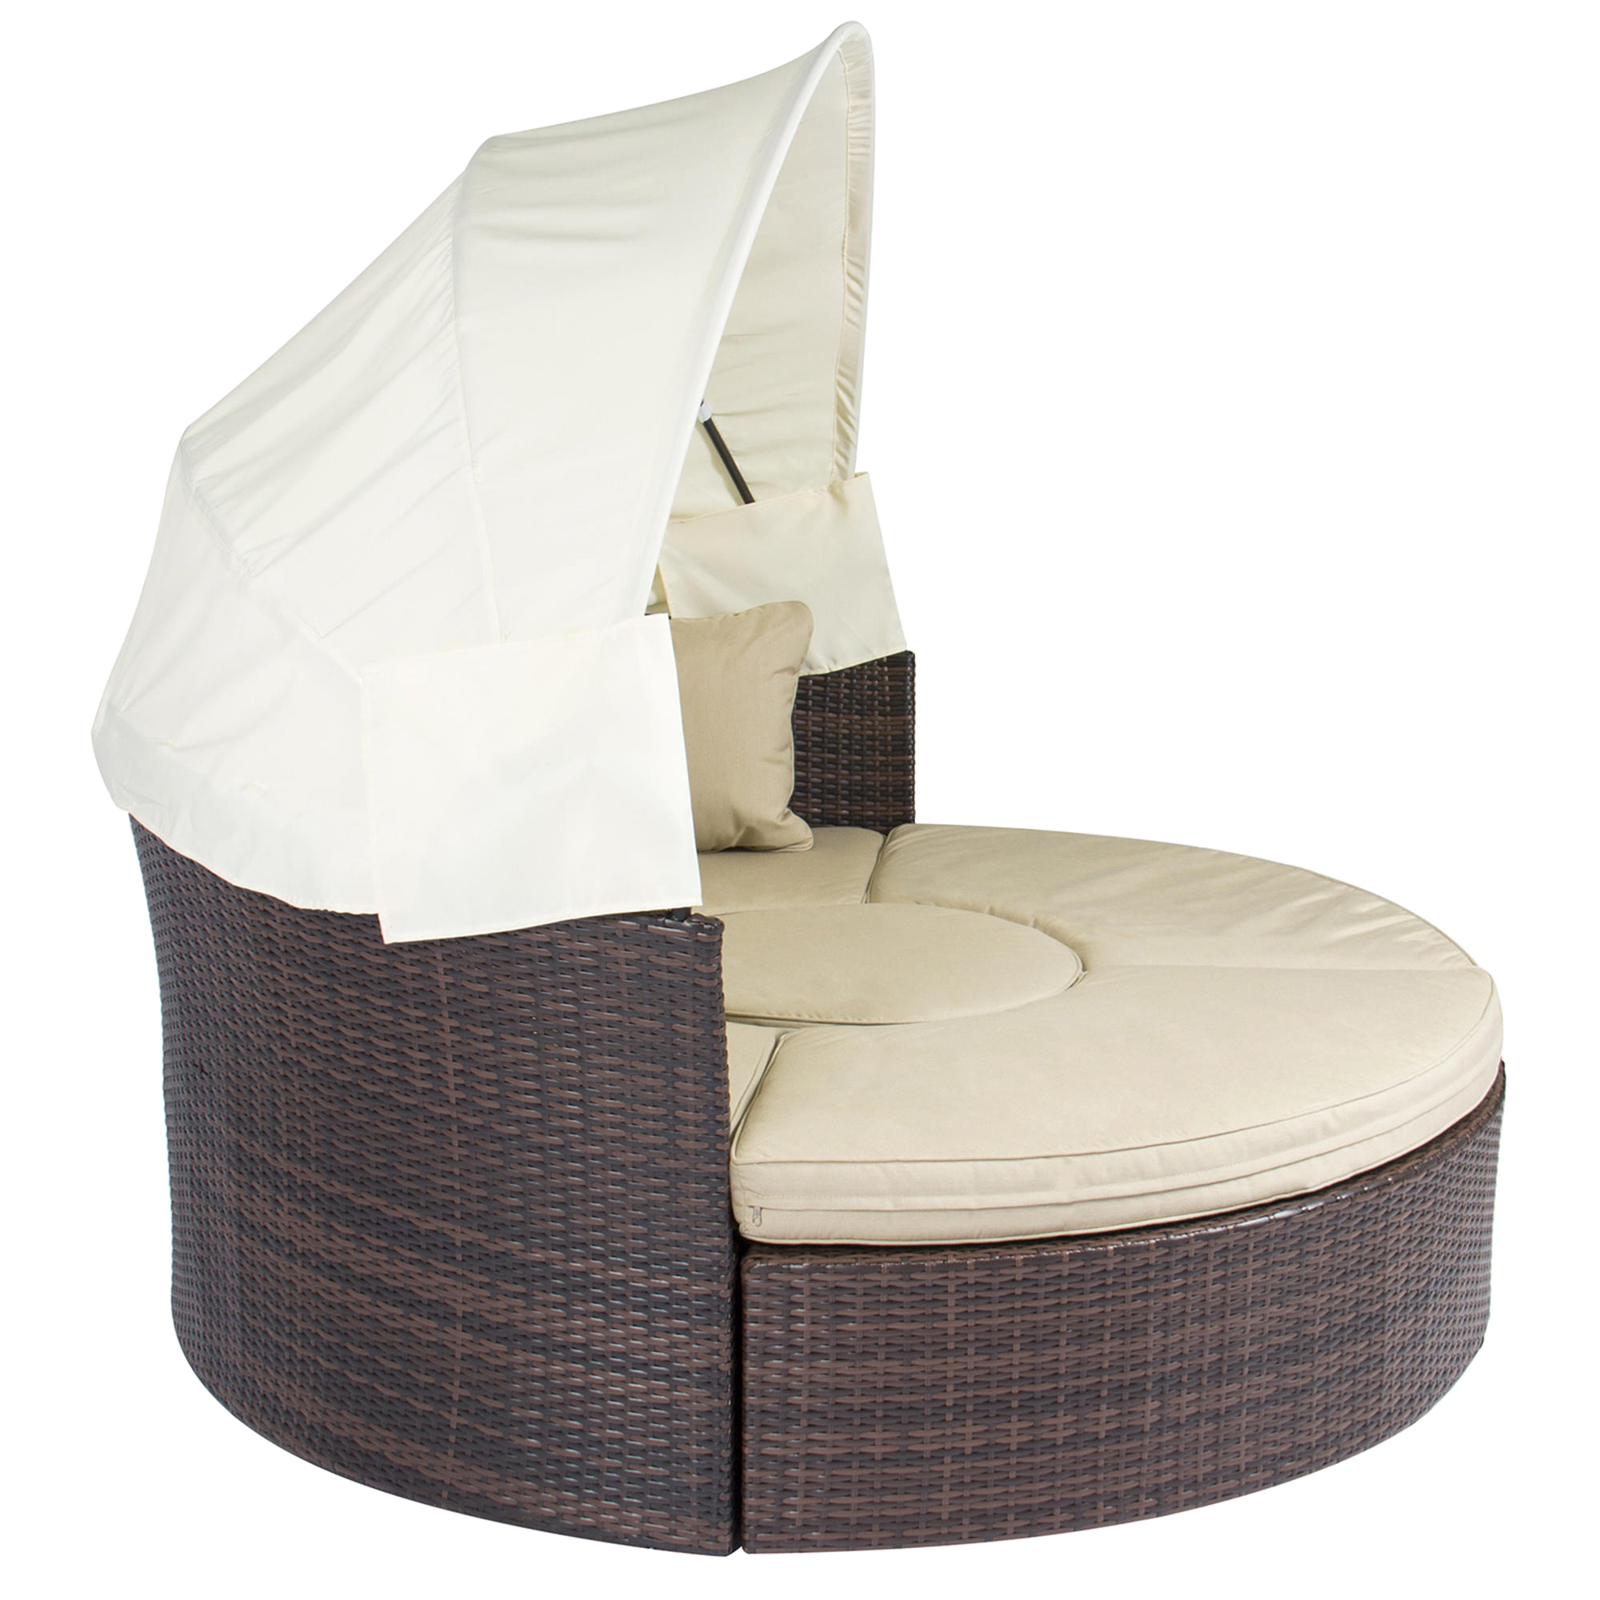 Choice Products Daybed With Retractable Canopy-sears